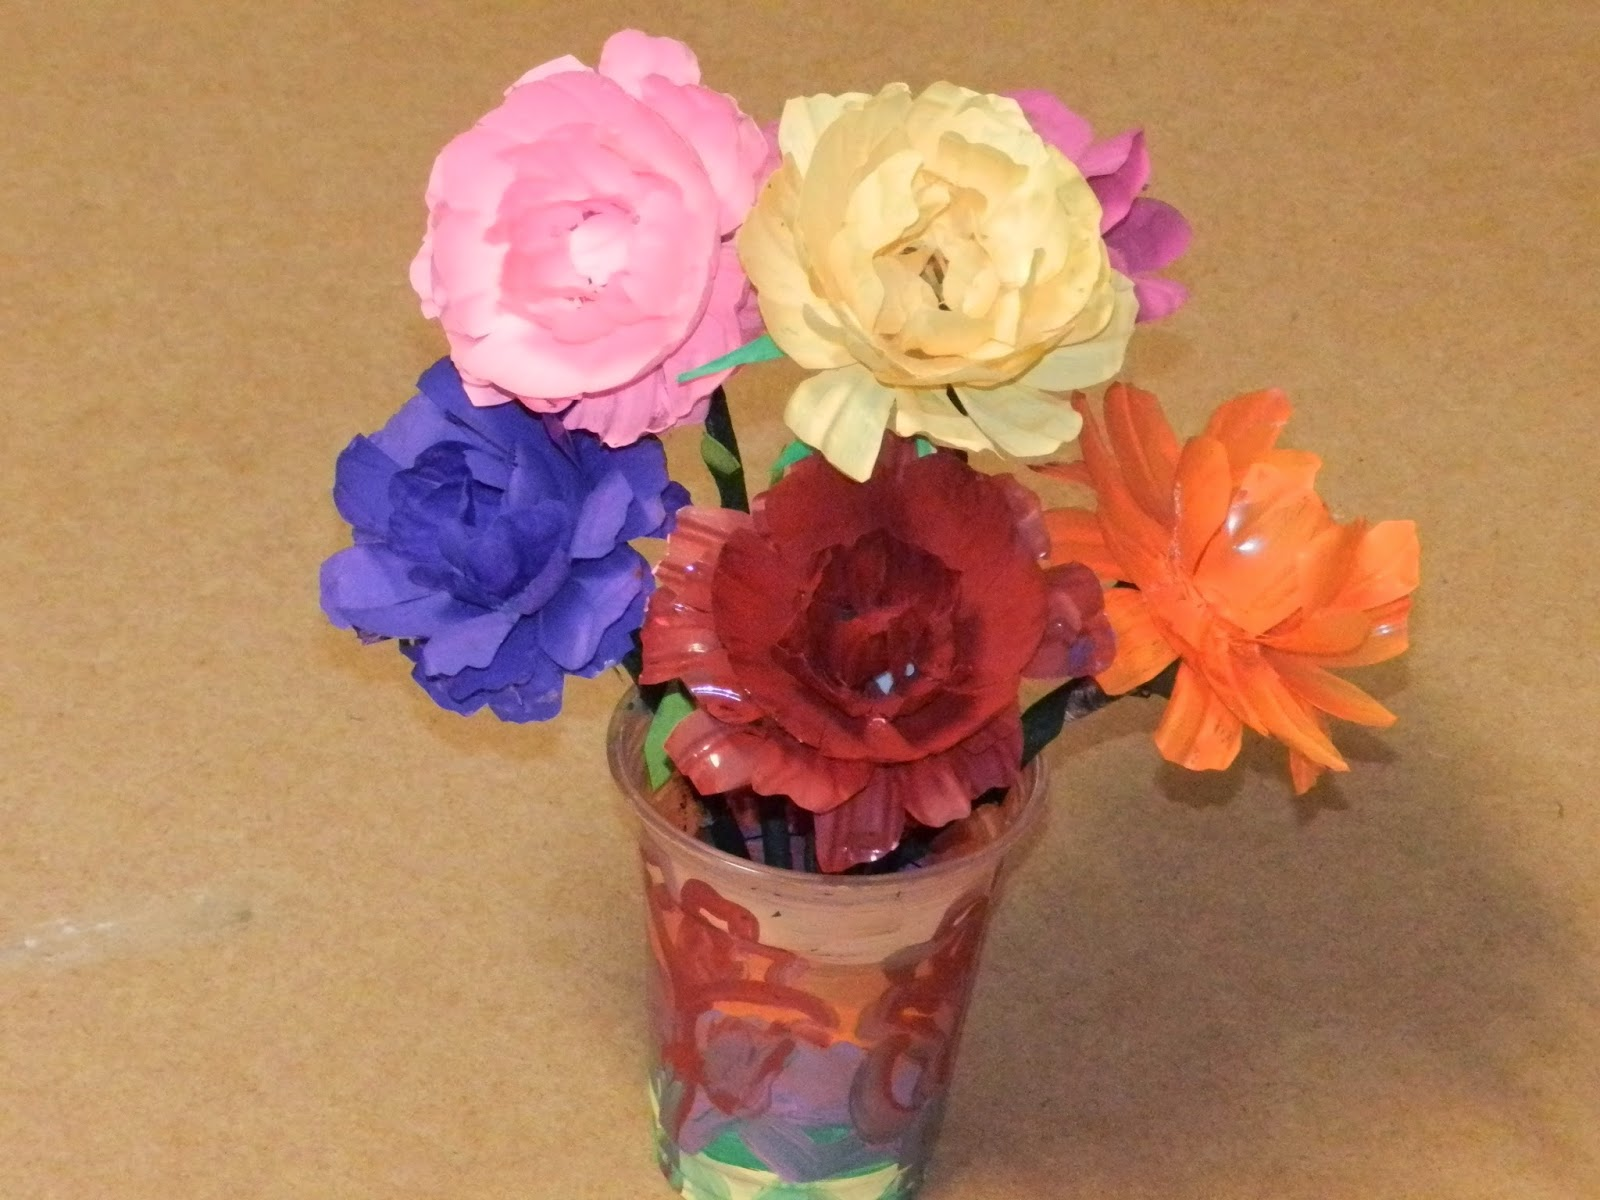 Creative diy crafts recycle and diy rhinoculous flowers for Craft using waste bottles